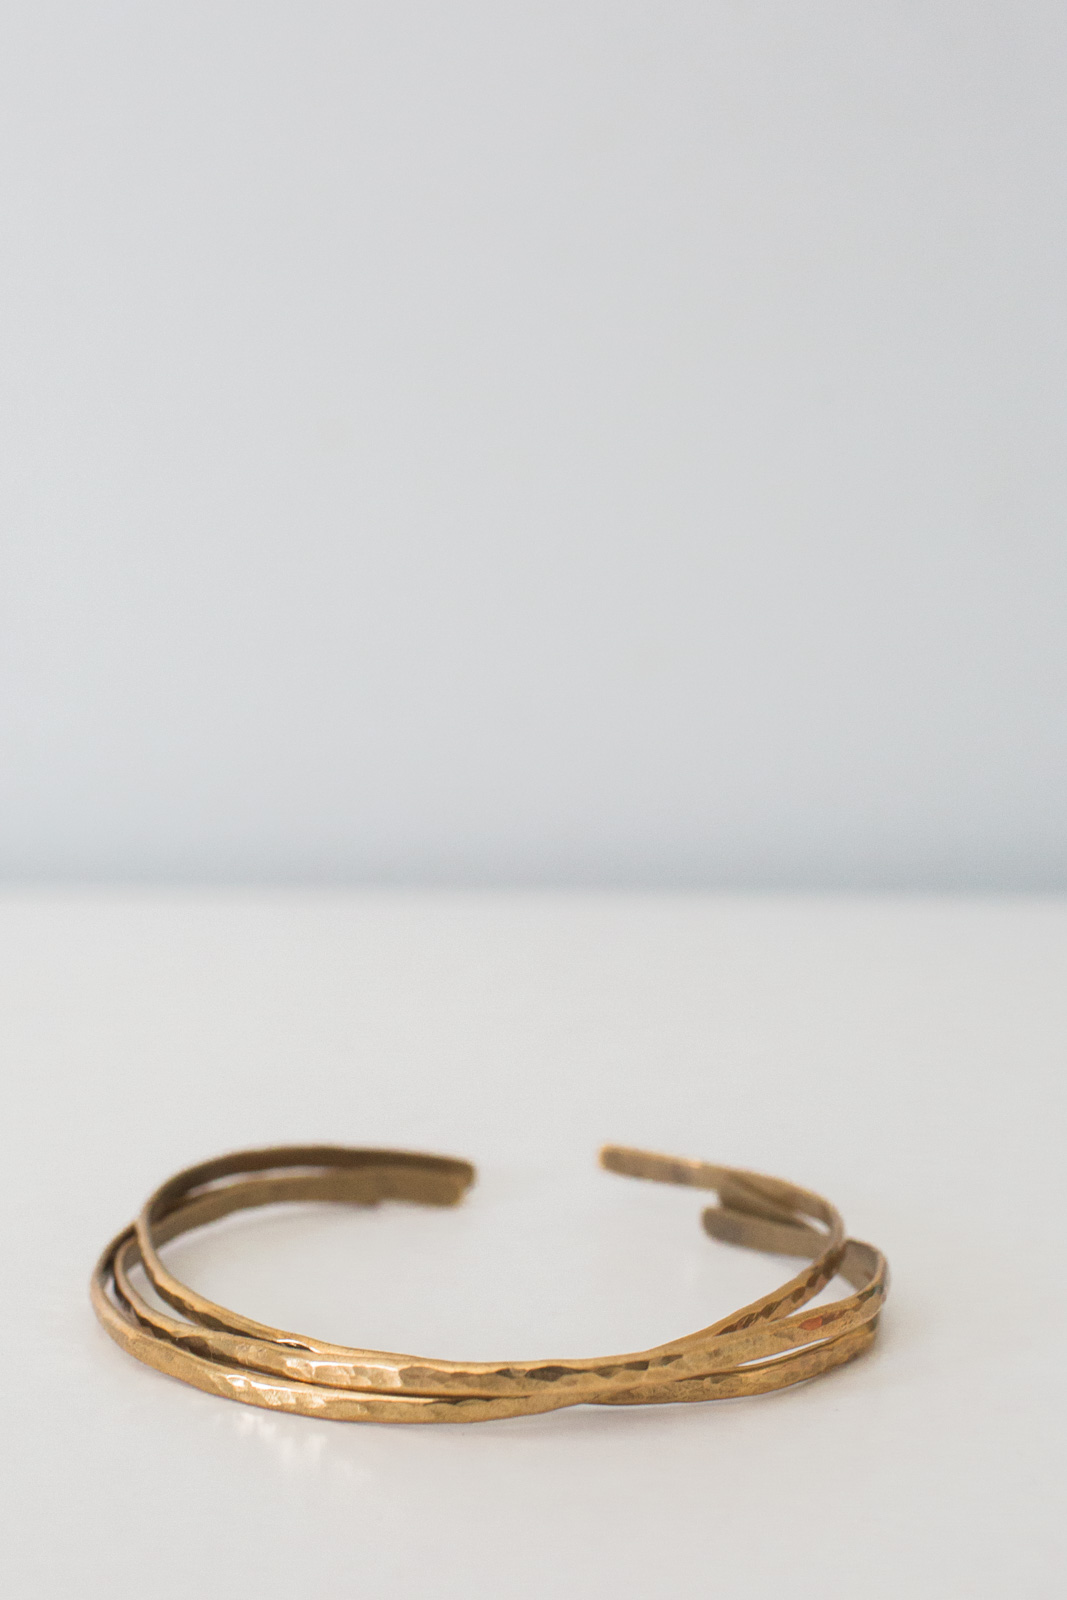 isabelle-grace-jewelry-skinny-shimmer-cuffs-5